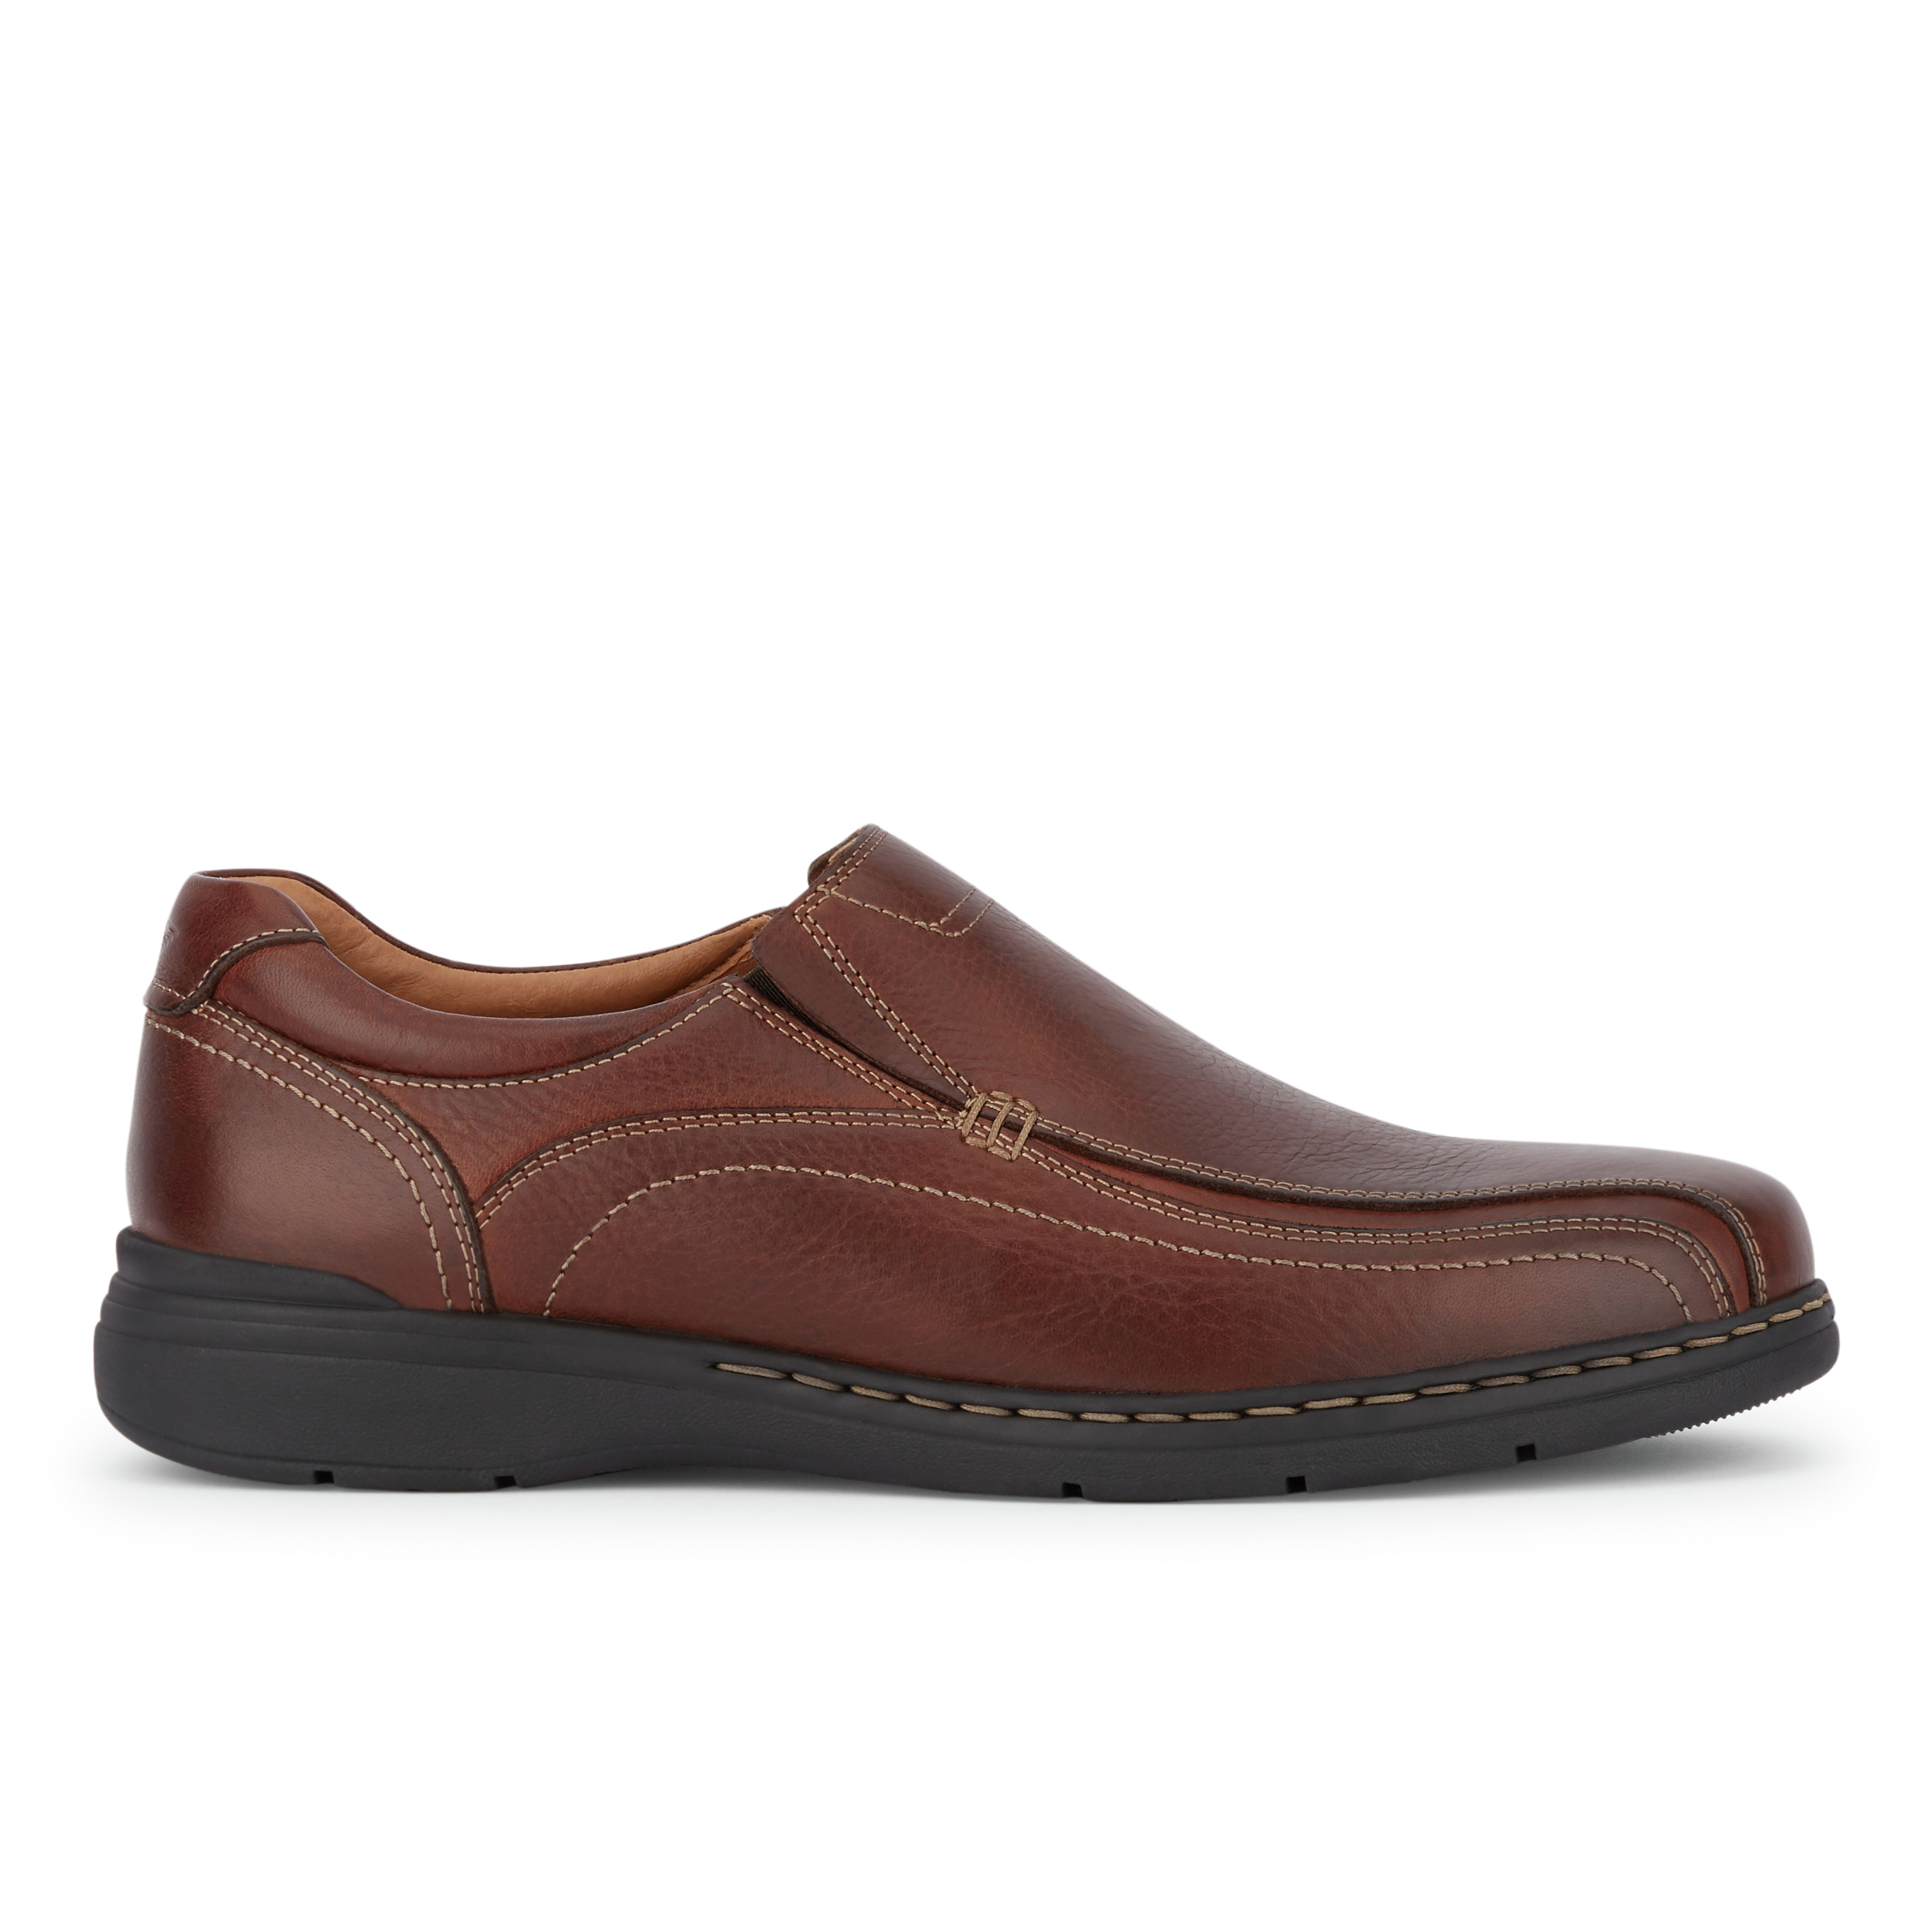 Dockers-Mens-Mosley-Genuine-Leather-Dress-Casual-Slip-on-Rubber-Sole-Shoe thumbnail 18